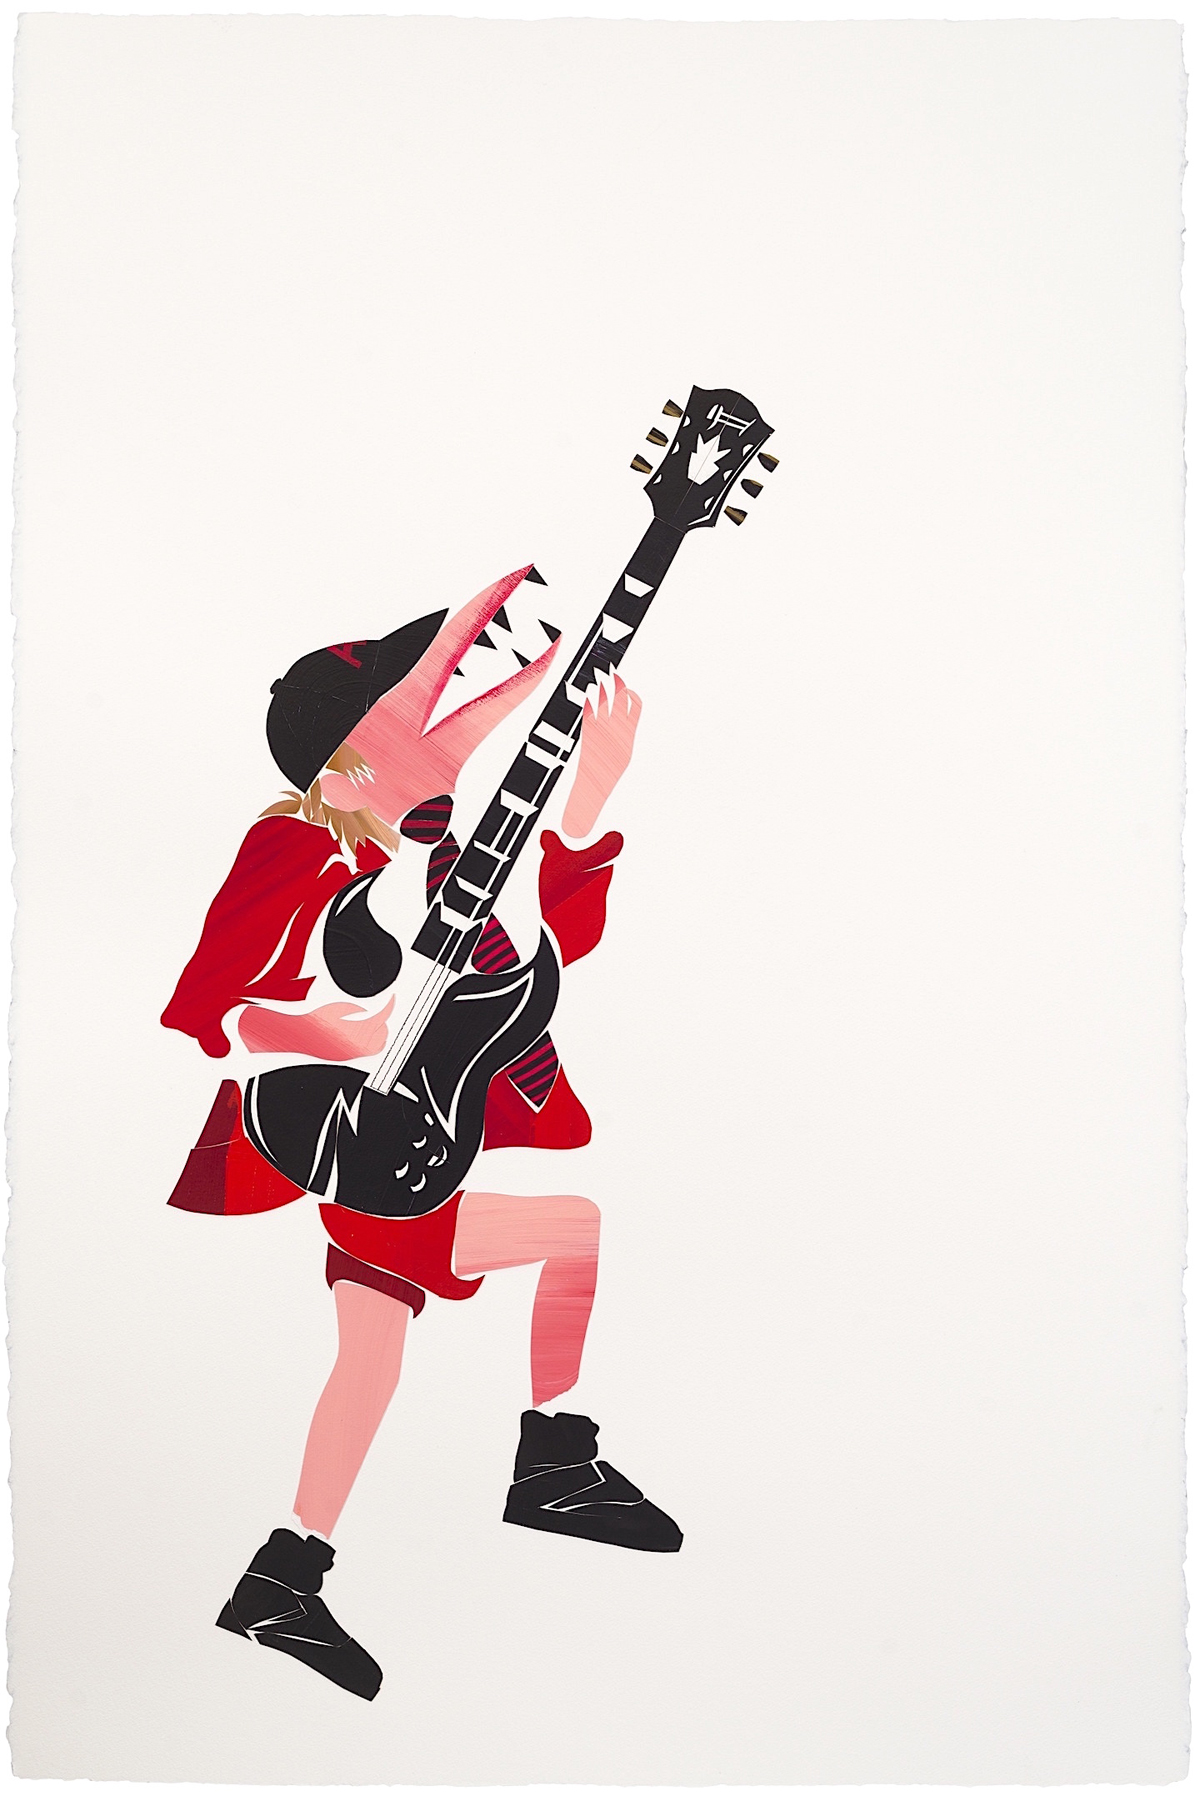 Abdul Vas. The Cut-Outs Rock Edge. Angus Young AC/DC, 2012. Angus Young Portrait